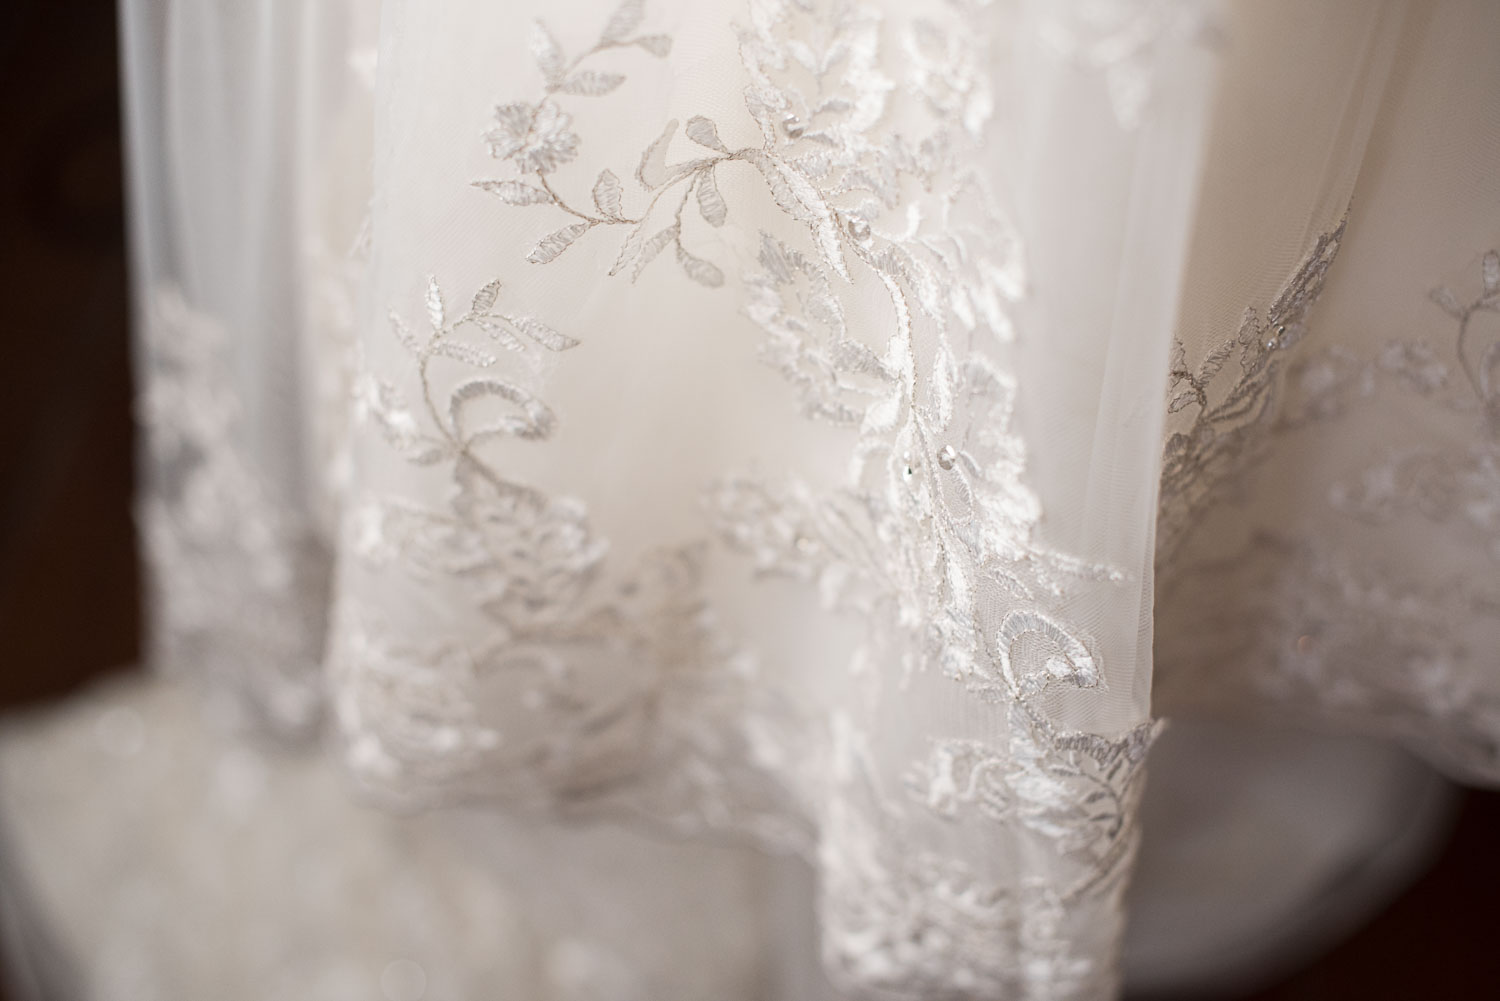 2 Scalloped Lace Detail on Bottom of Dress.jpg